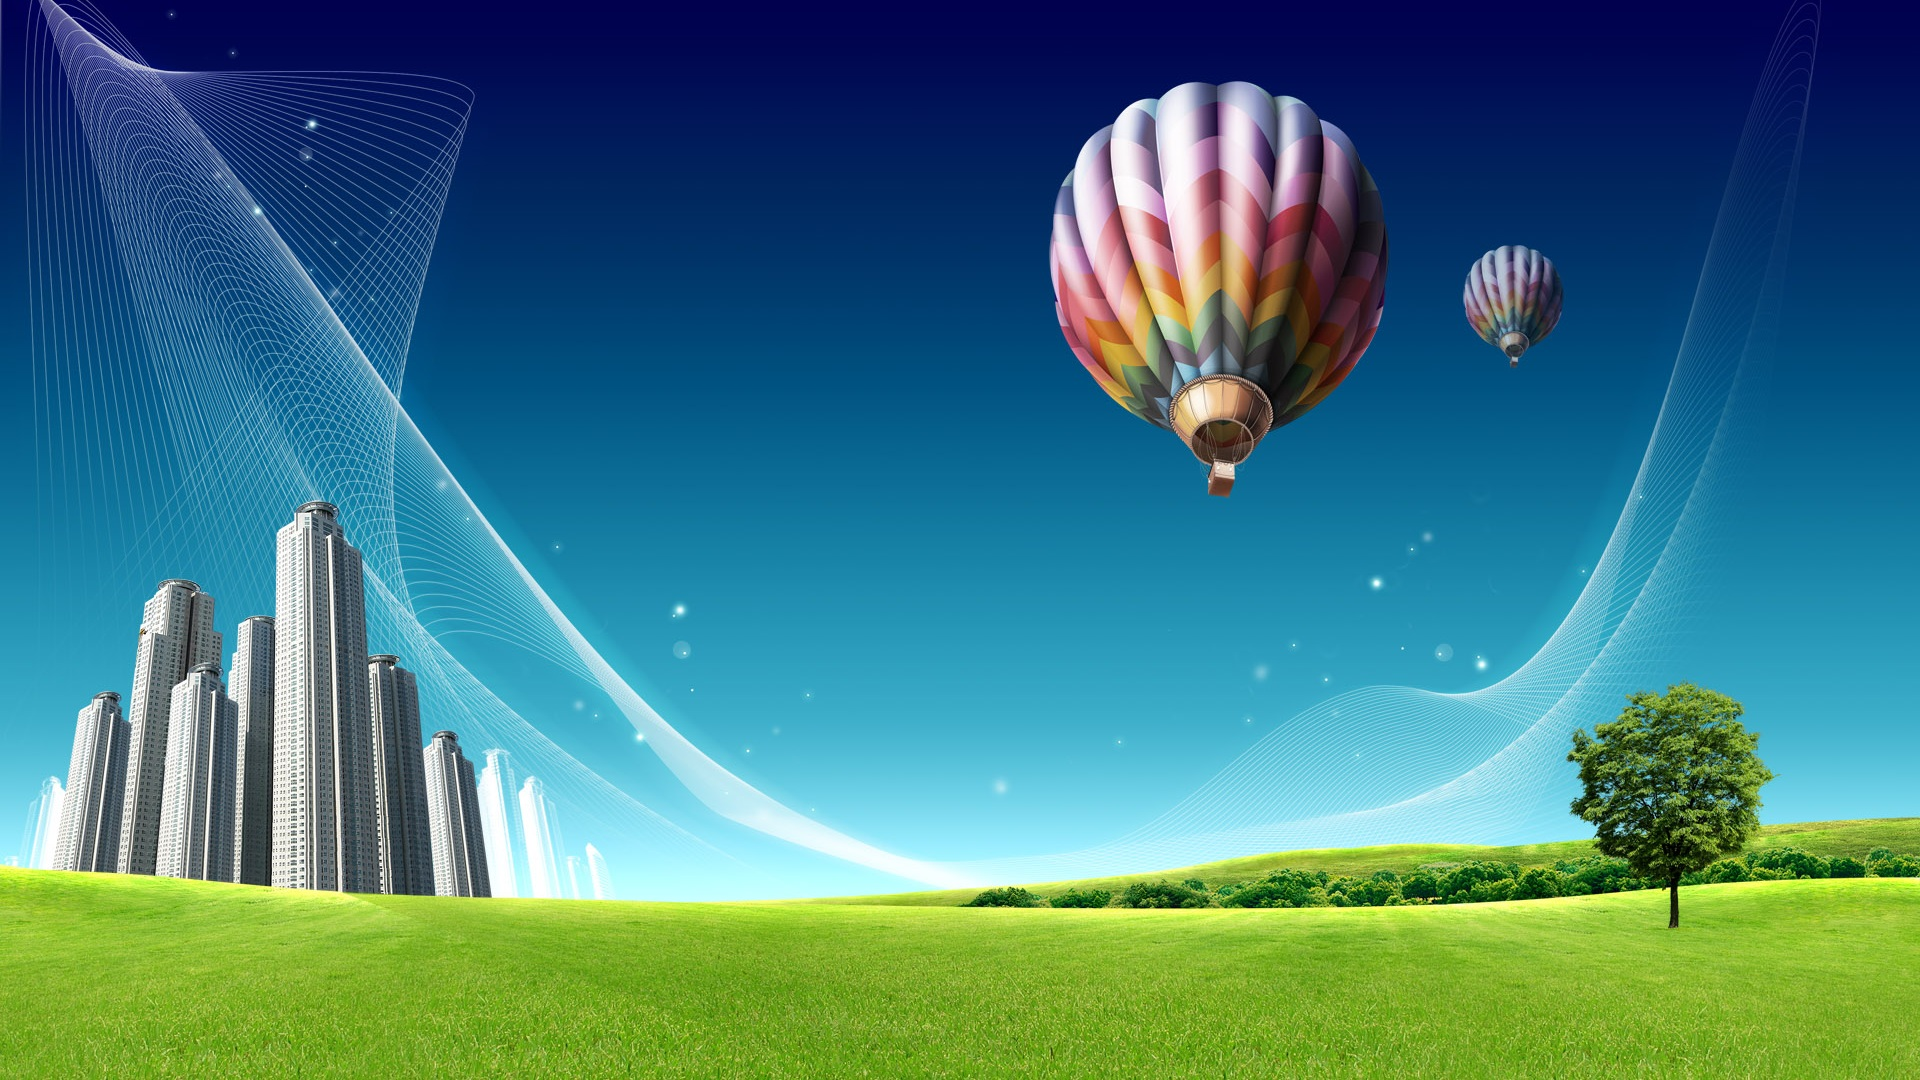 Wallpaper Hot Air Balloon Over The City Prairie 1920x1200 Hd